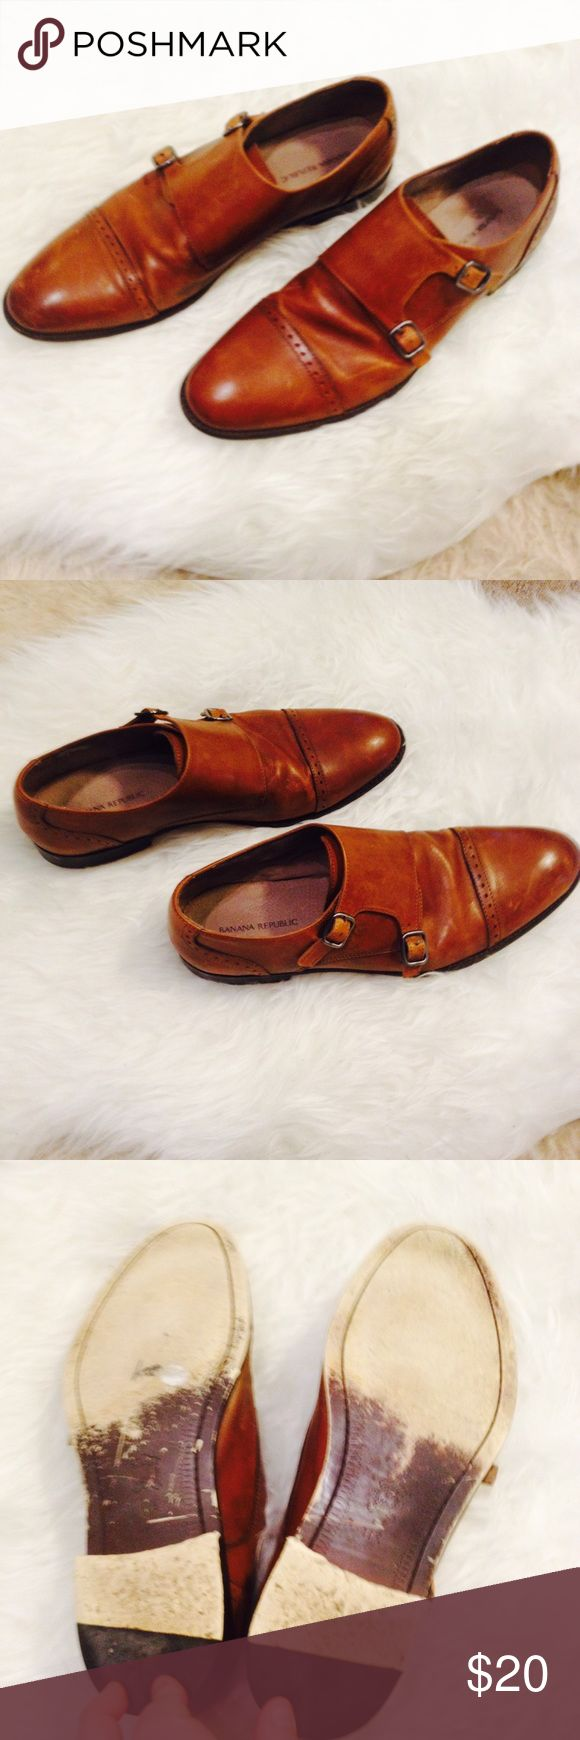 Men's Banana Republic leather shoes Men's Banana Republic leather shoes with buckles. Some wear on bottom but overall good used condition. Banana Republic Shoes Loafers & Slip-Ons